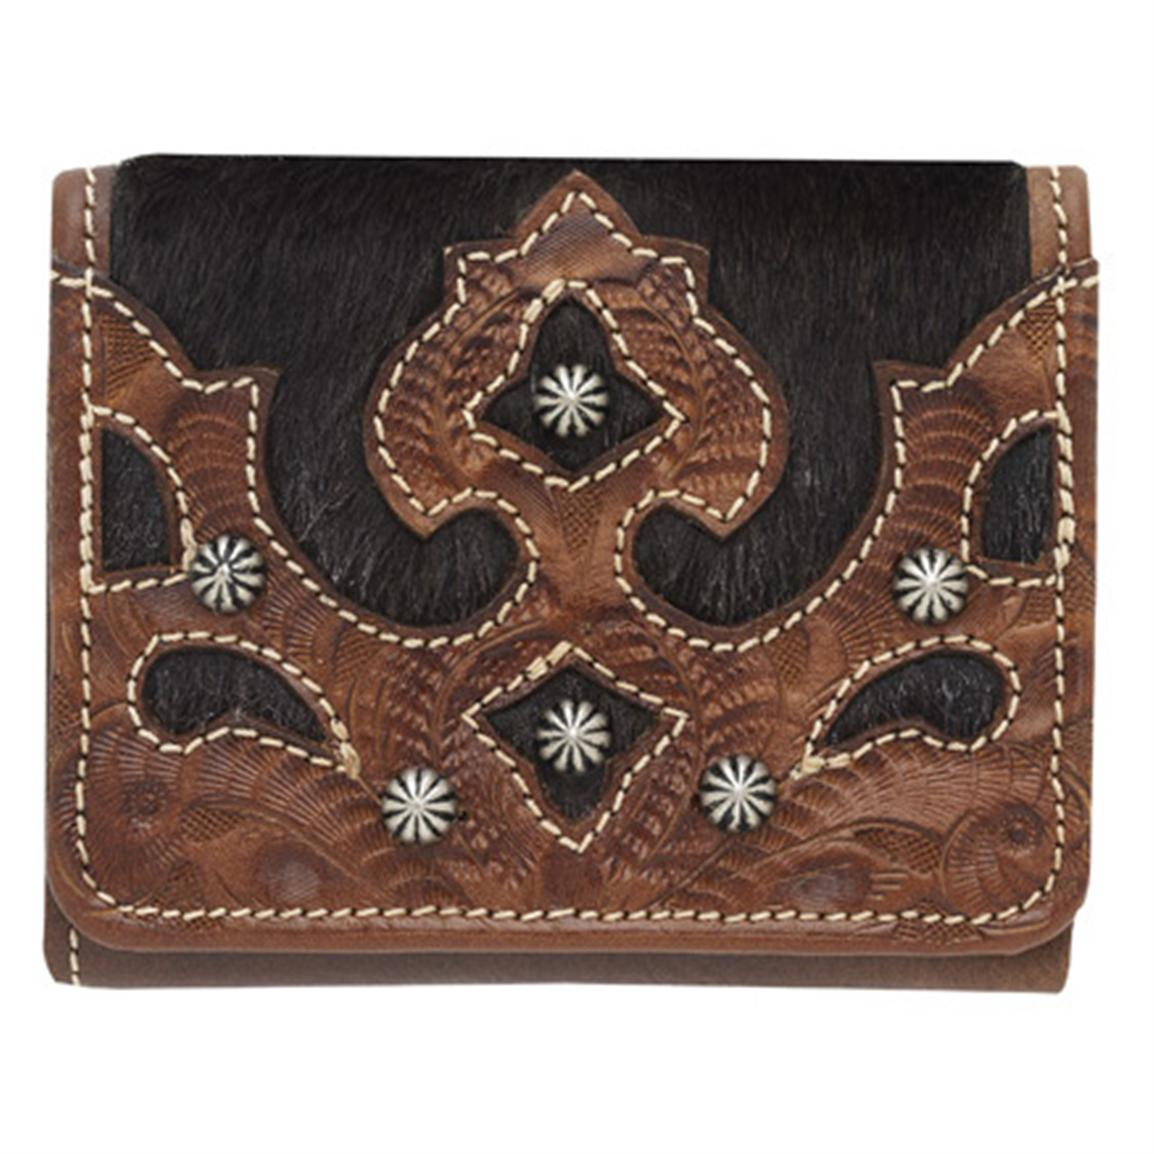 American West® Women's Tri-Fold French-style Leather Wallet, Antique Tan / Chocolate